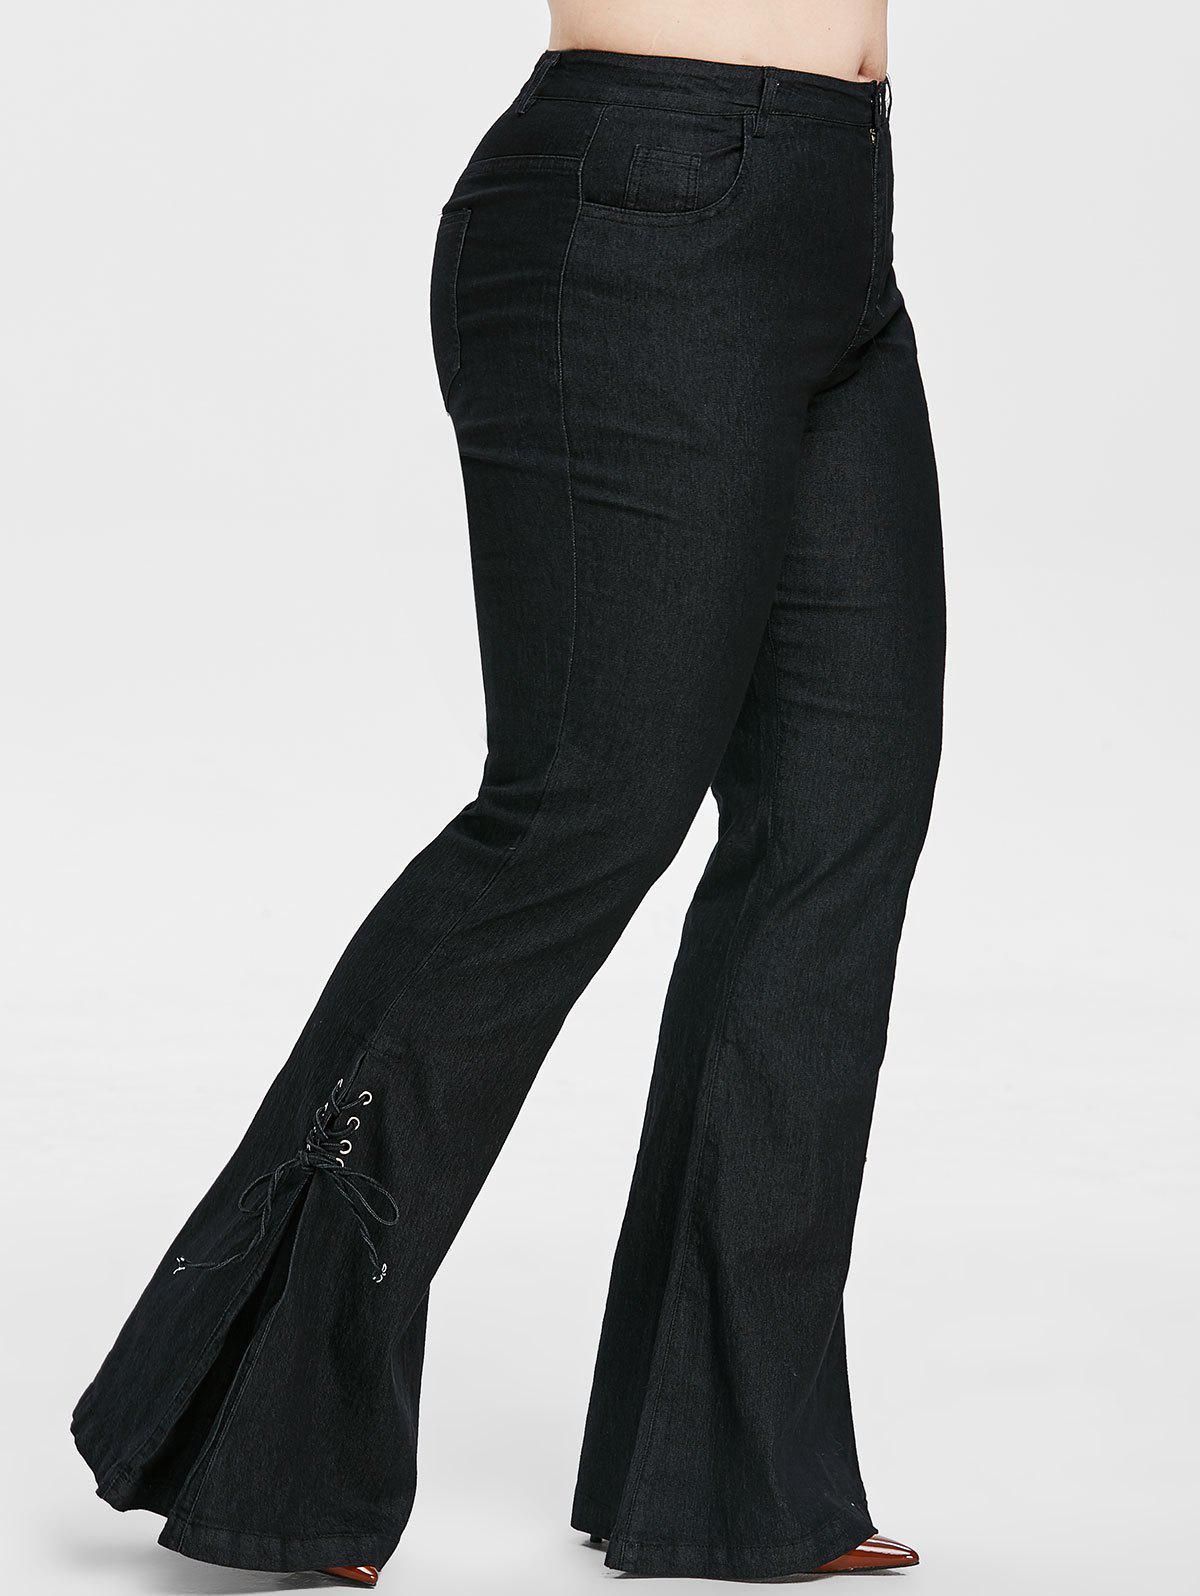 Plus Size Lace Up Bell Bottom Jeans - BLACK 4X